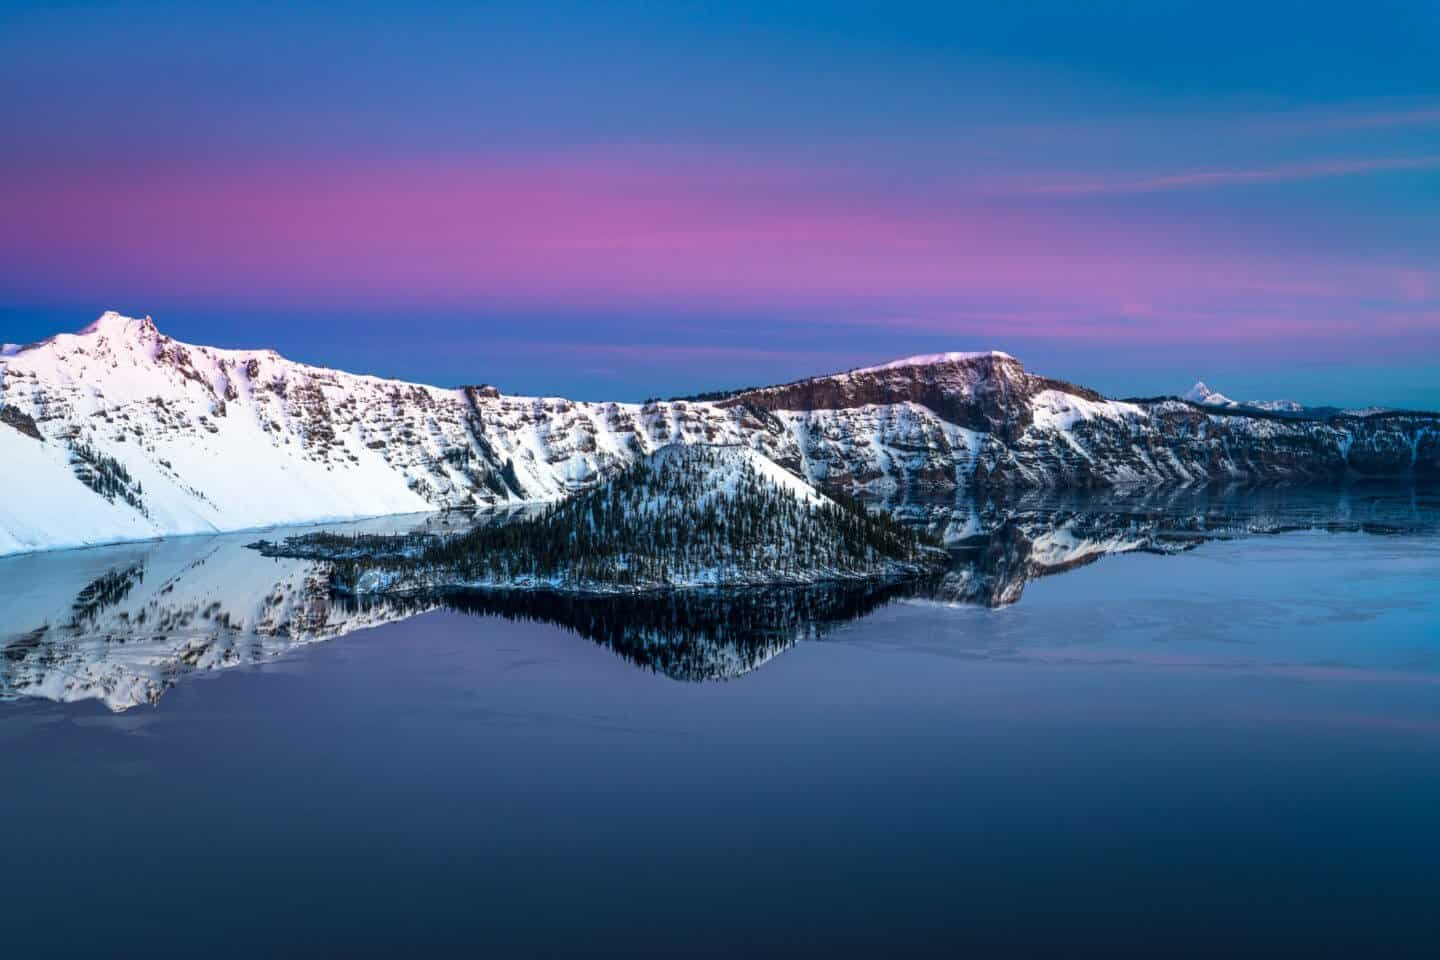 Wizard Island decorated in blue and purple tones, photographed on a snowy winter sunrise.